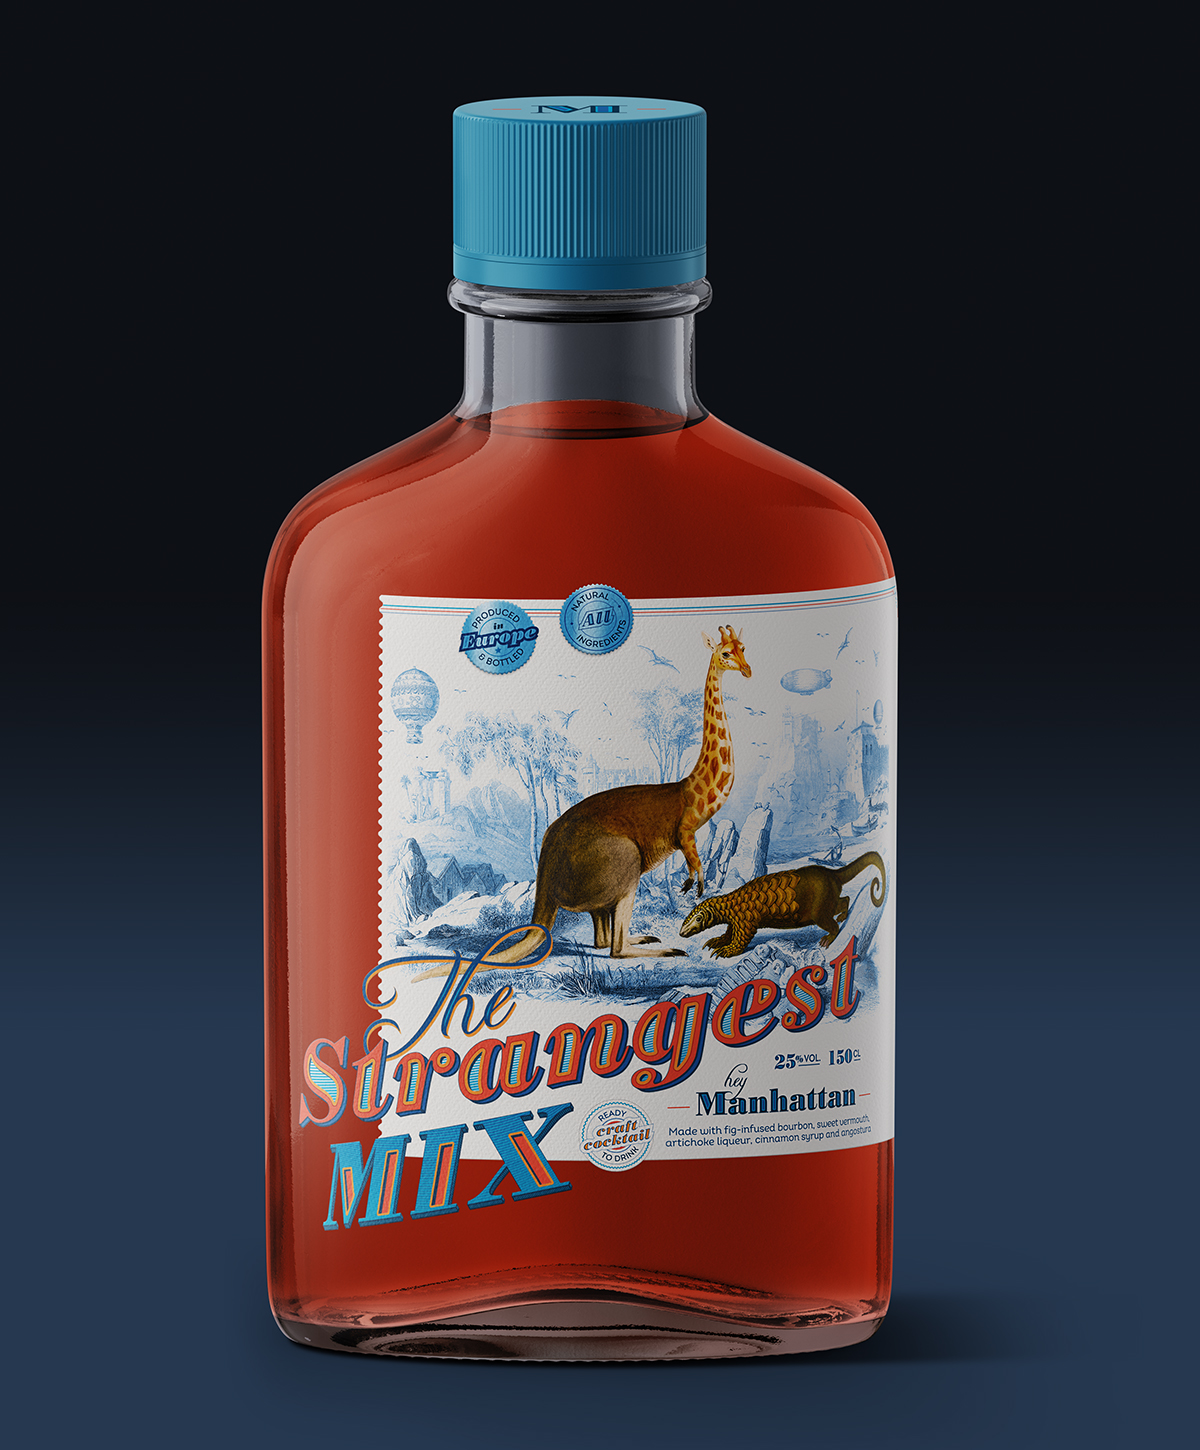 Bottle label design for The Strangest Mix by Tea for two - Creative Work - $i